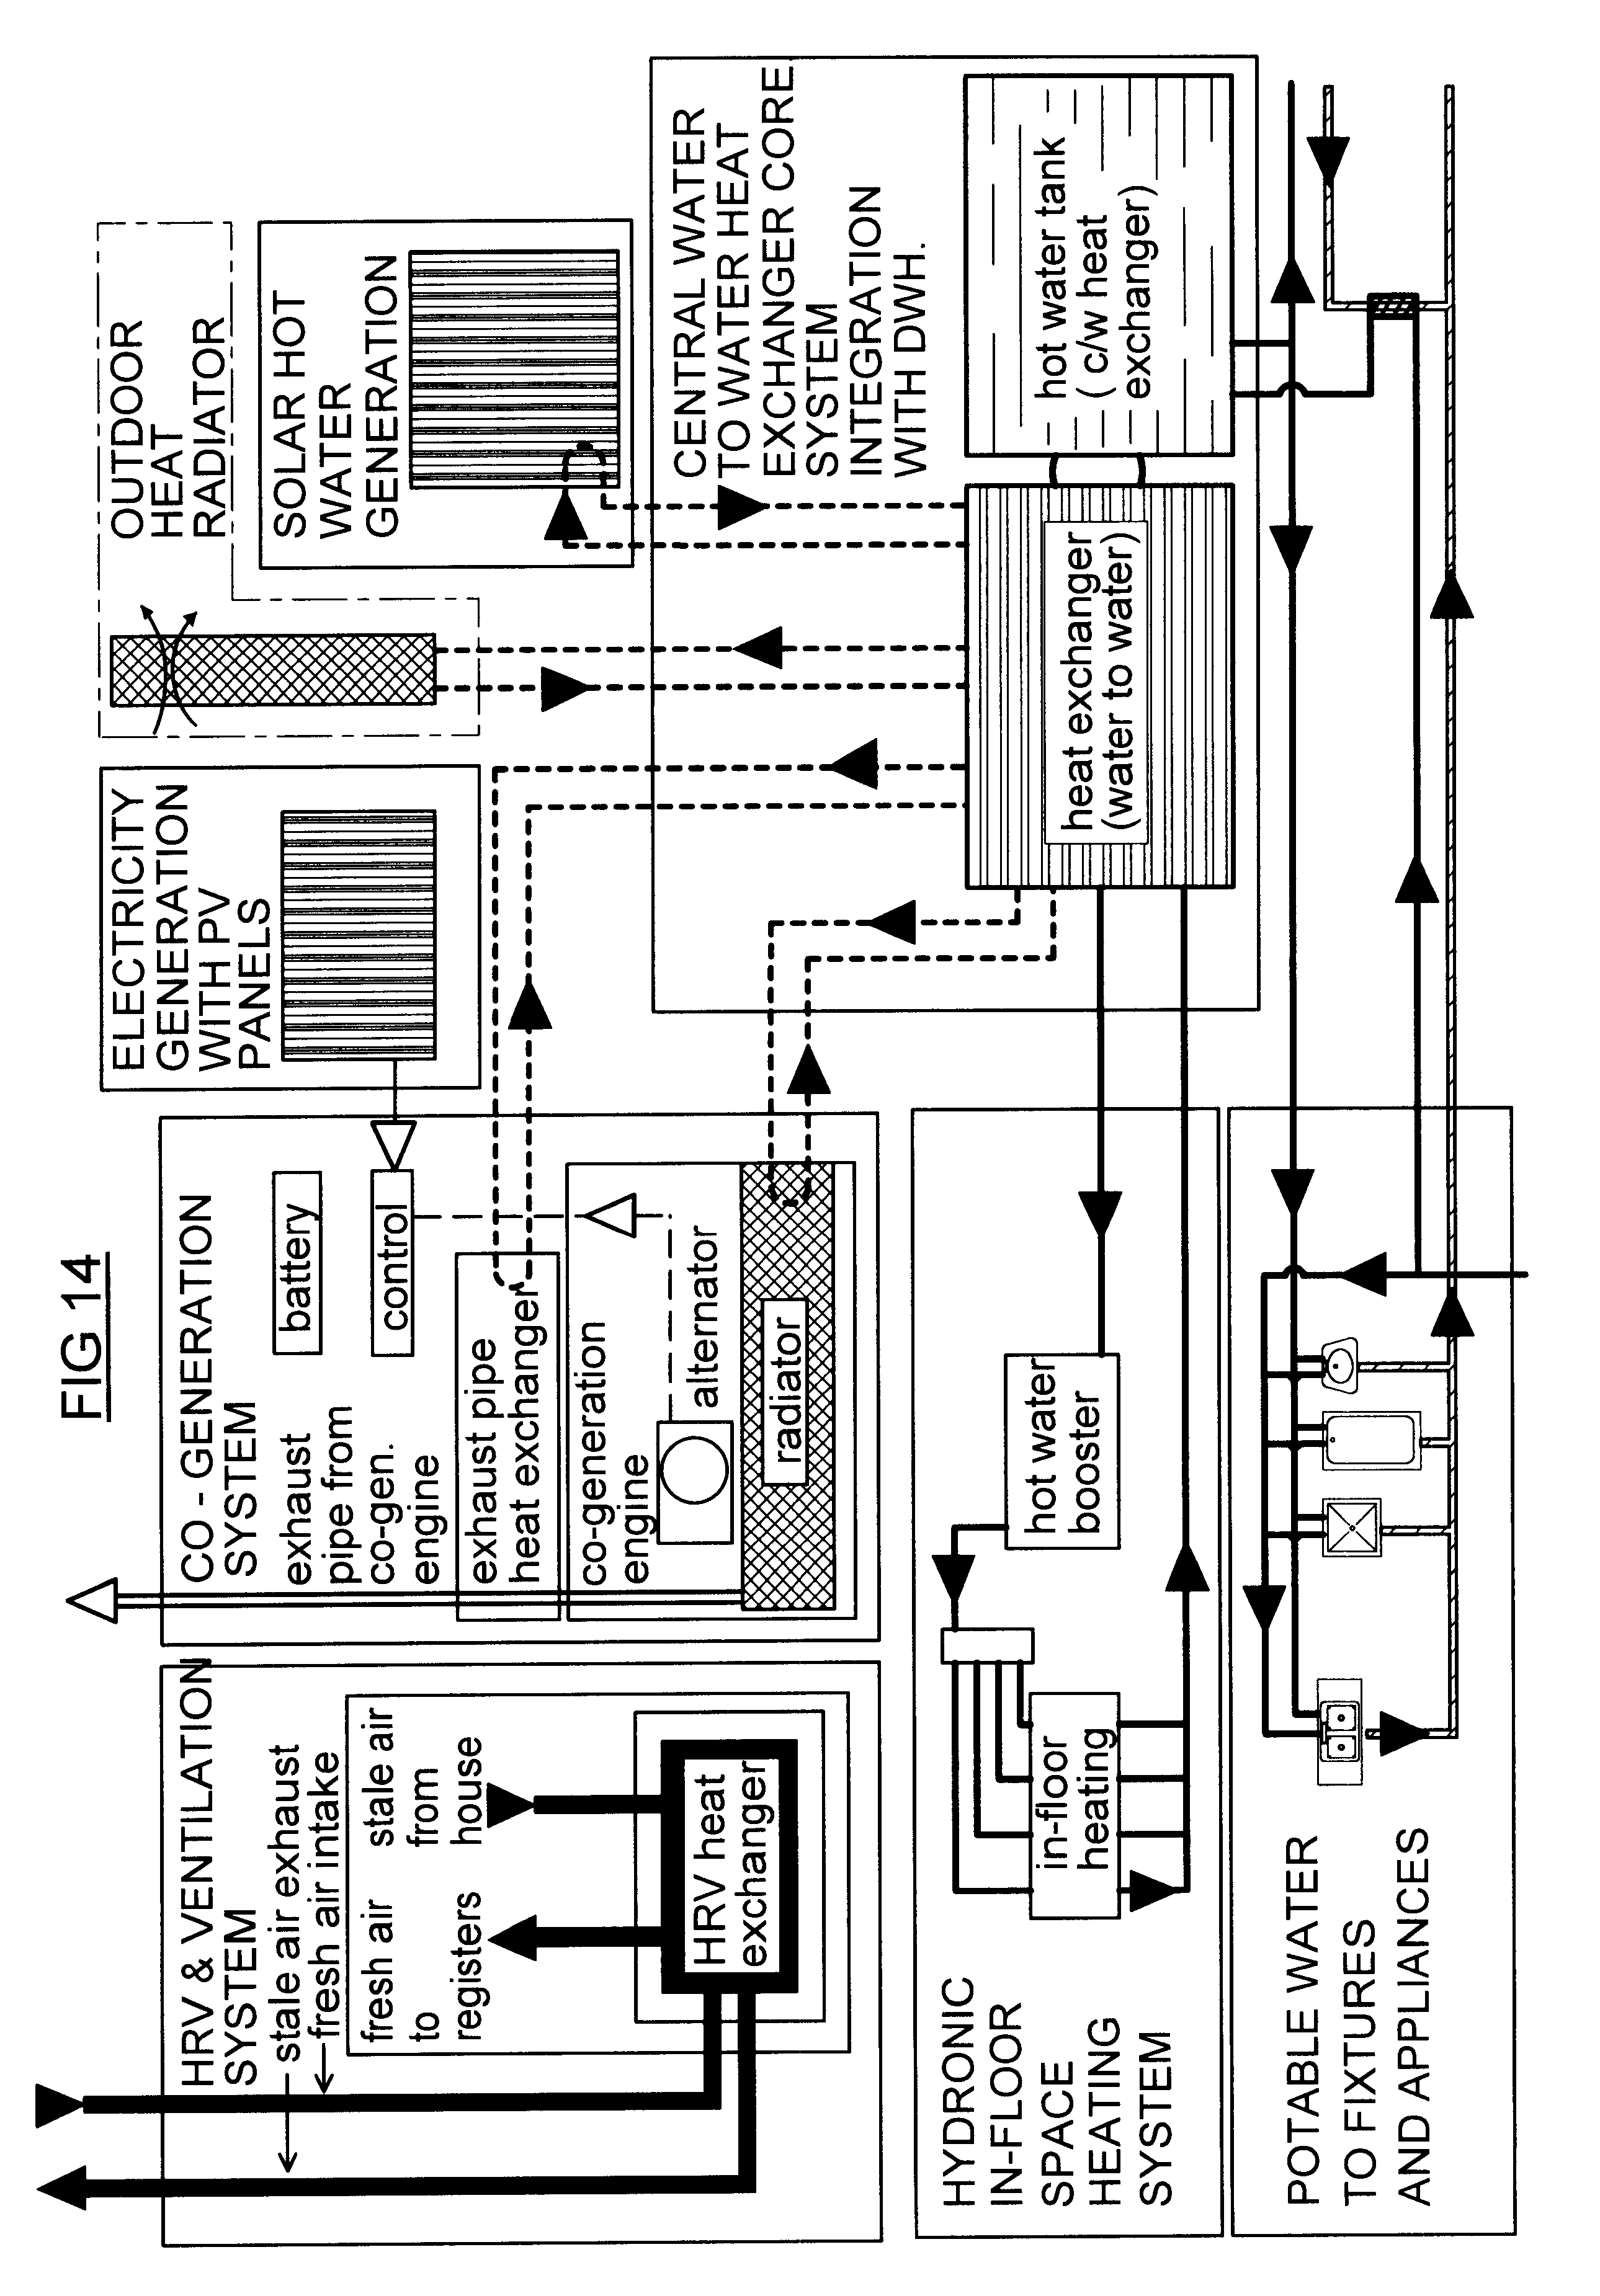 Attractive central heat system photos wiring diagram ideas enchanting gravity central heating system ideas wiring diagram asfbconference2016 Gallery